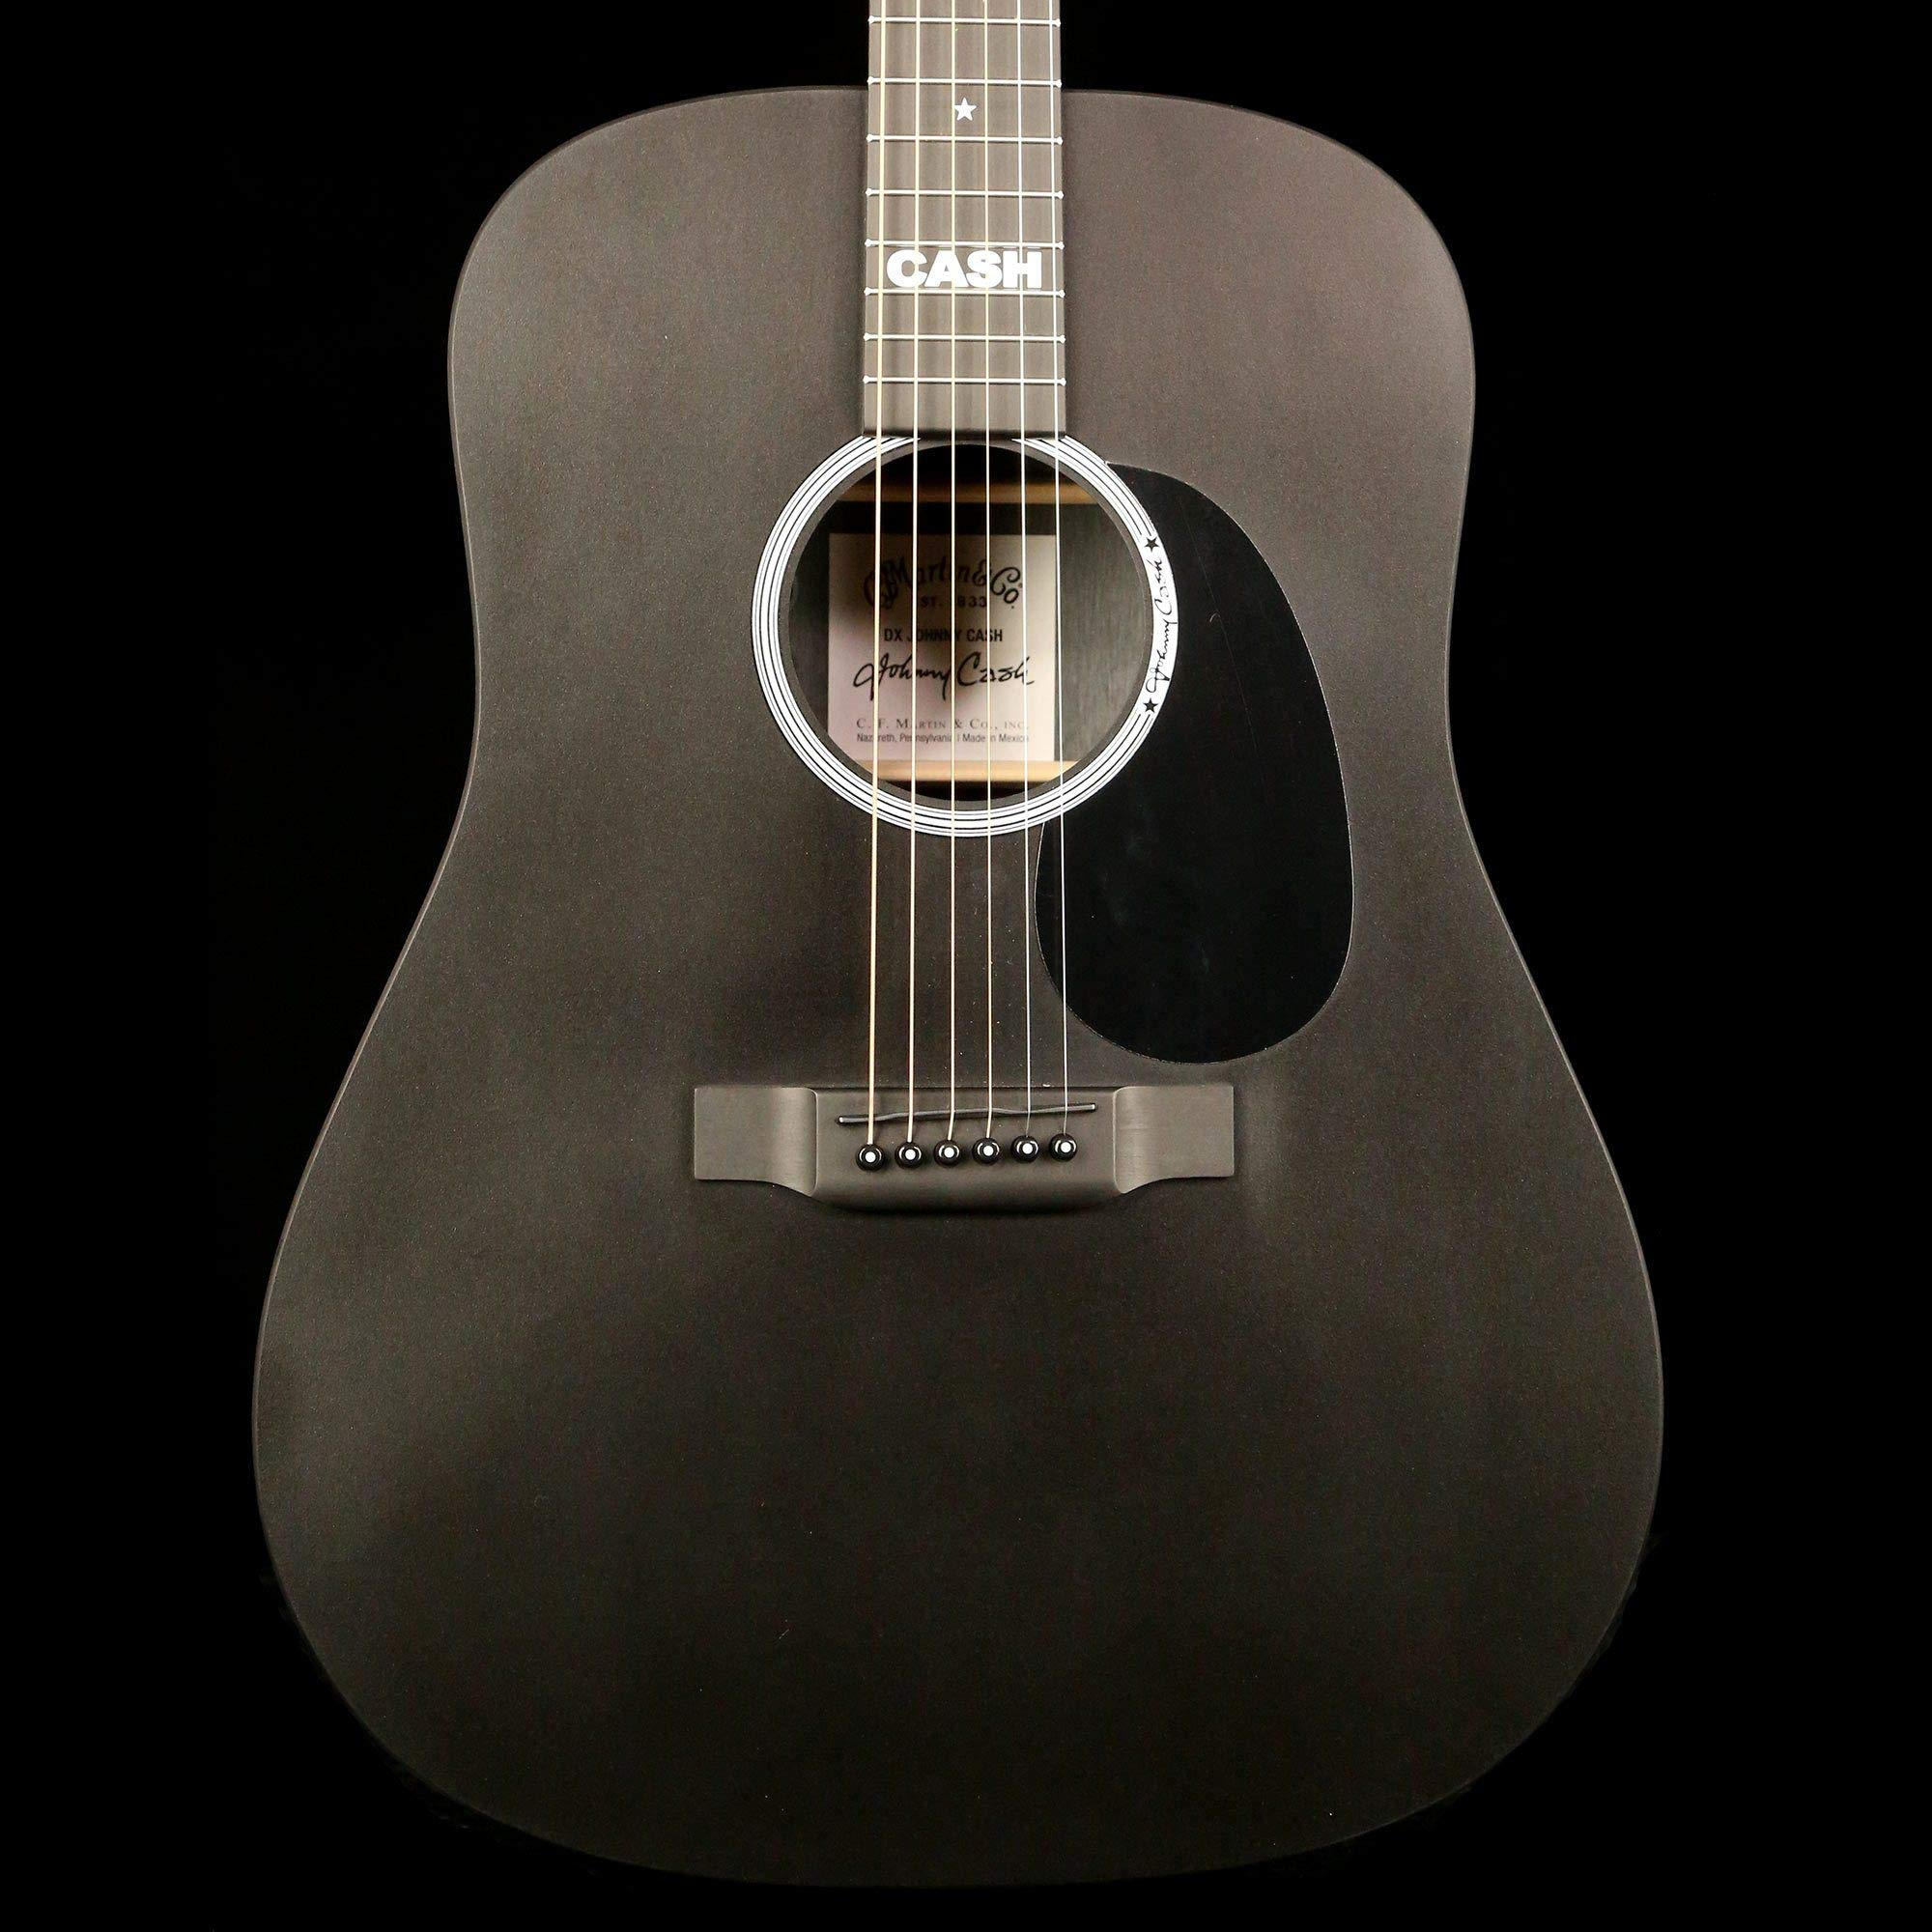 Martin DX Johnny Cash Acoustic-Electric Guitar by Martin